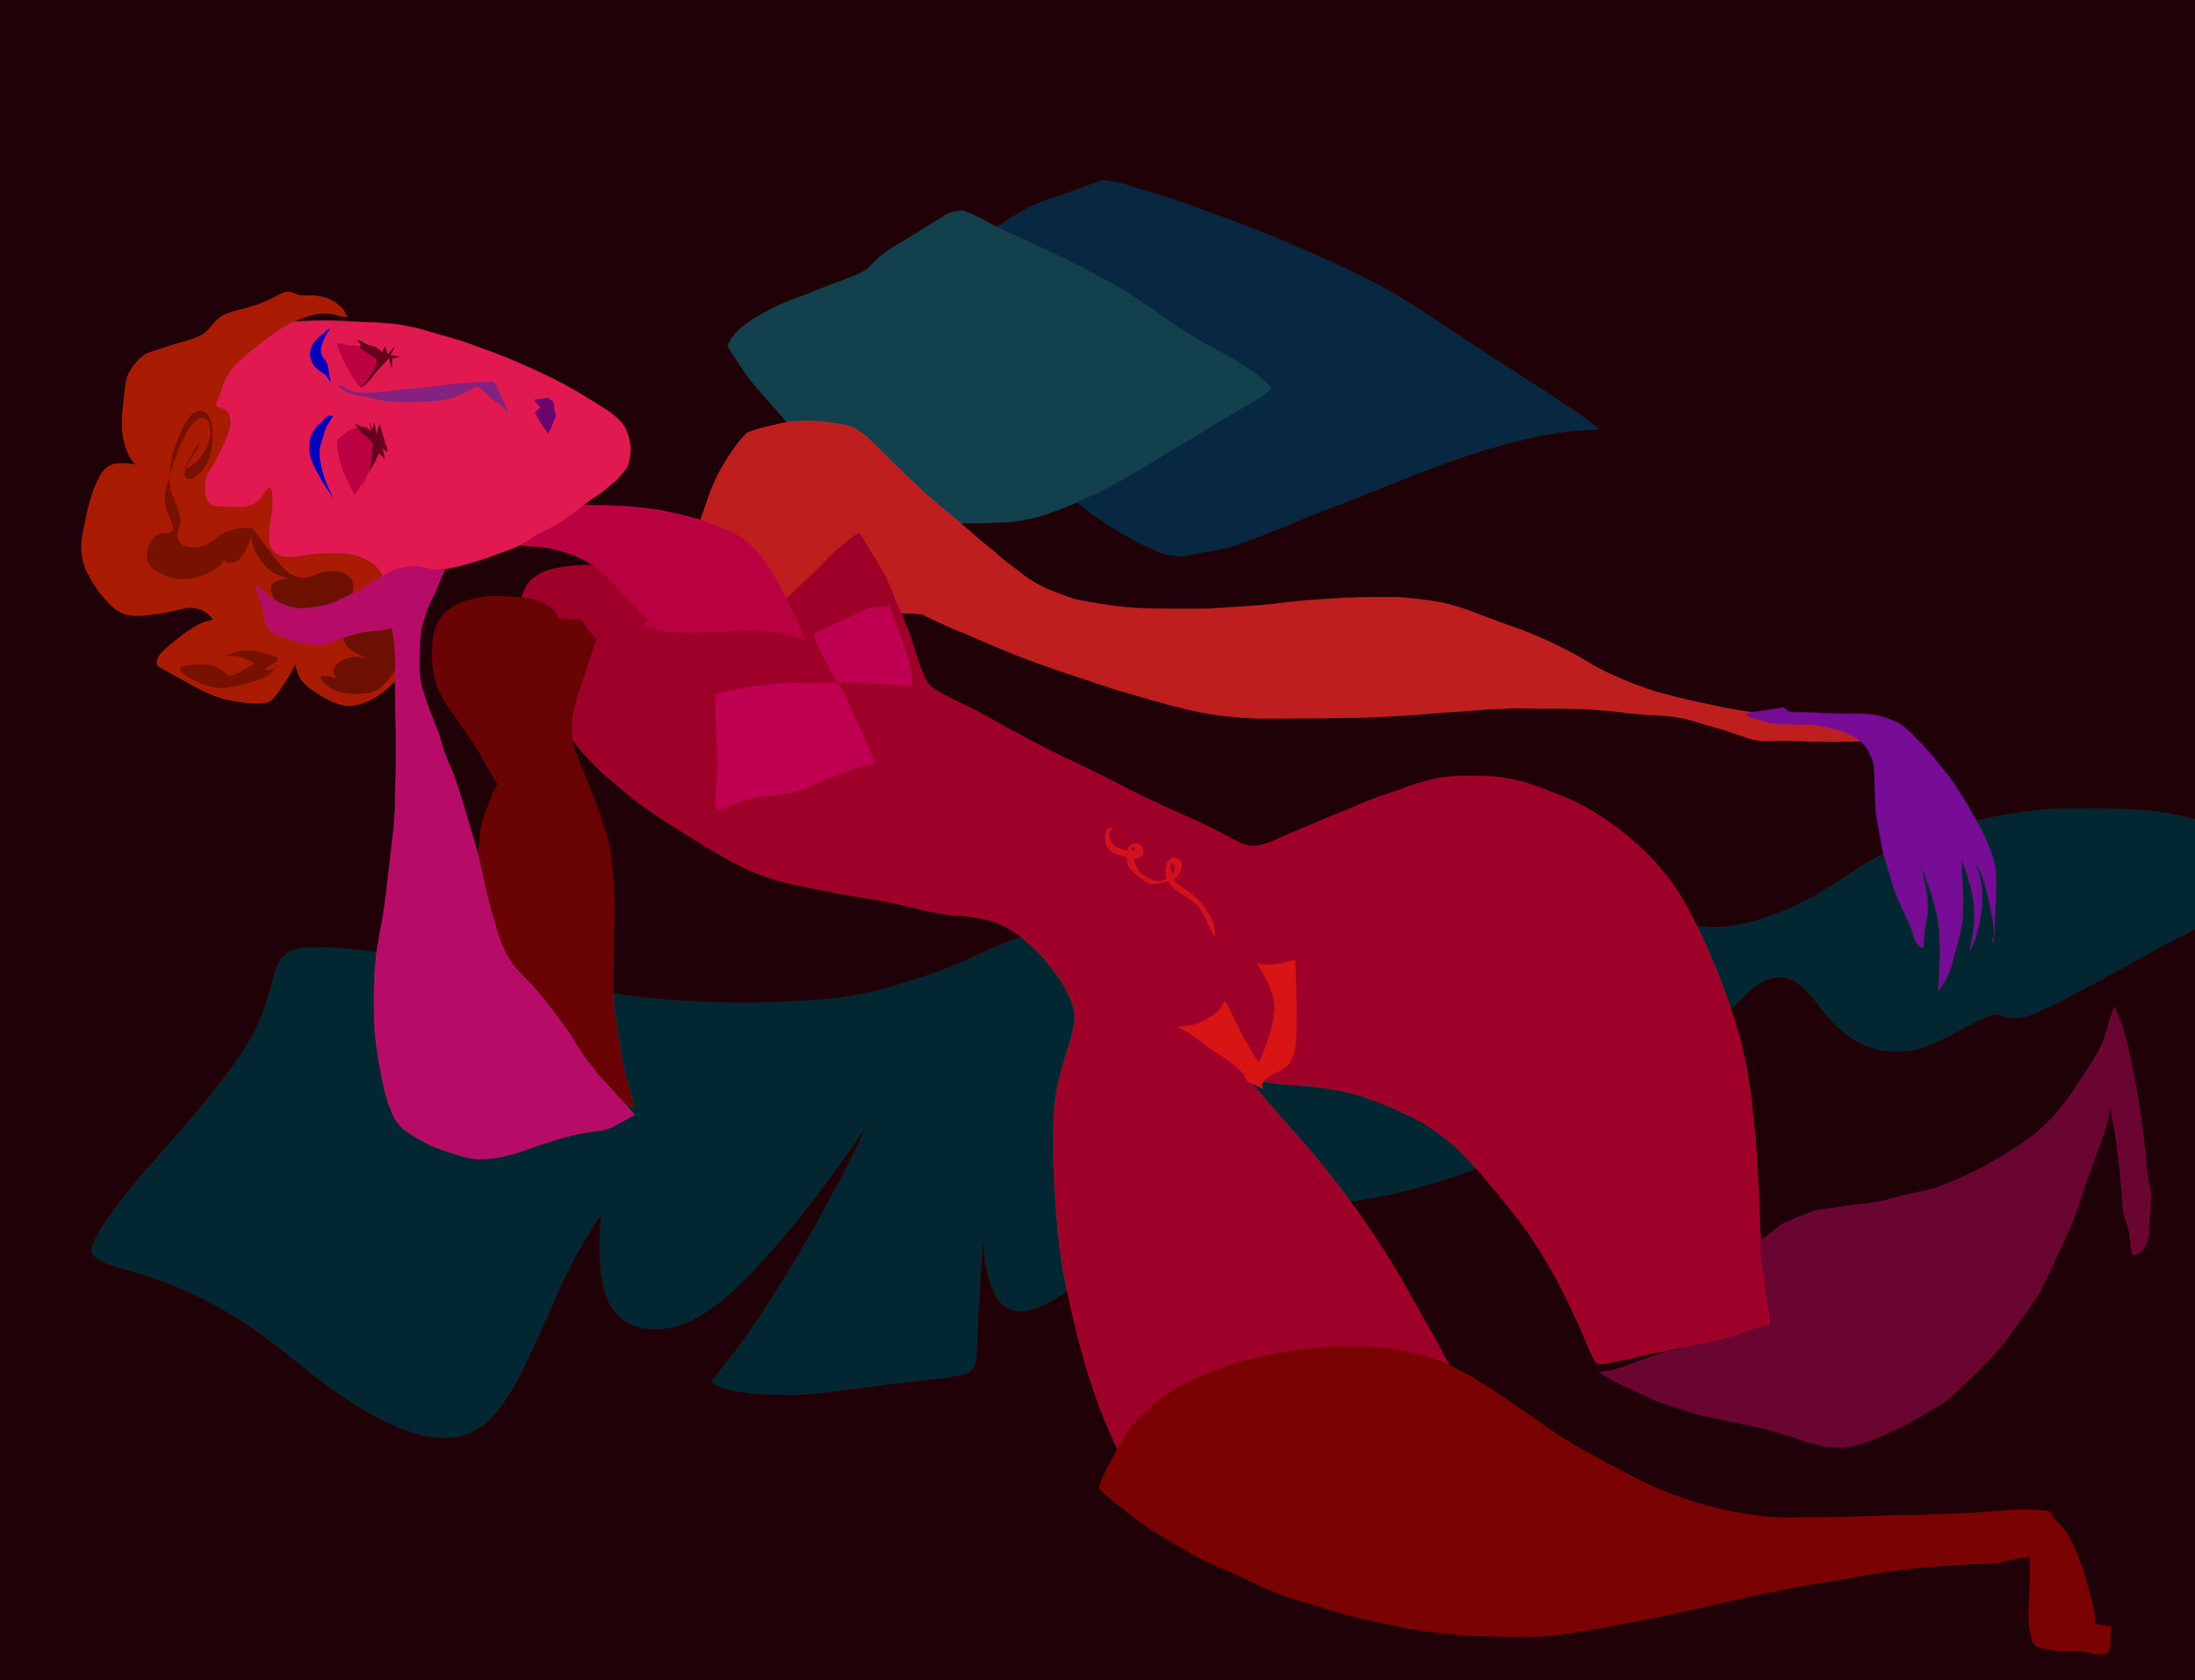 Red Nude Reclining - 2019 - digital